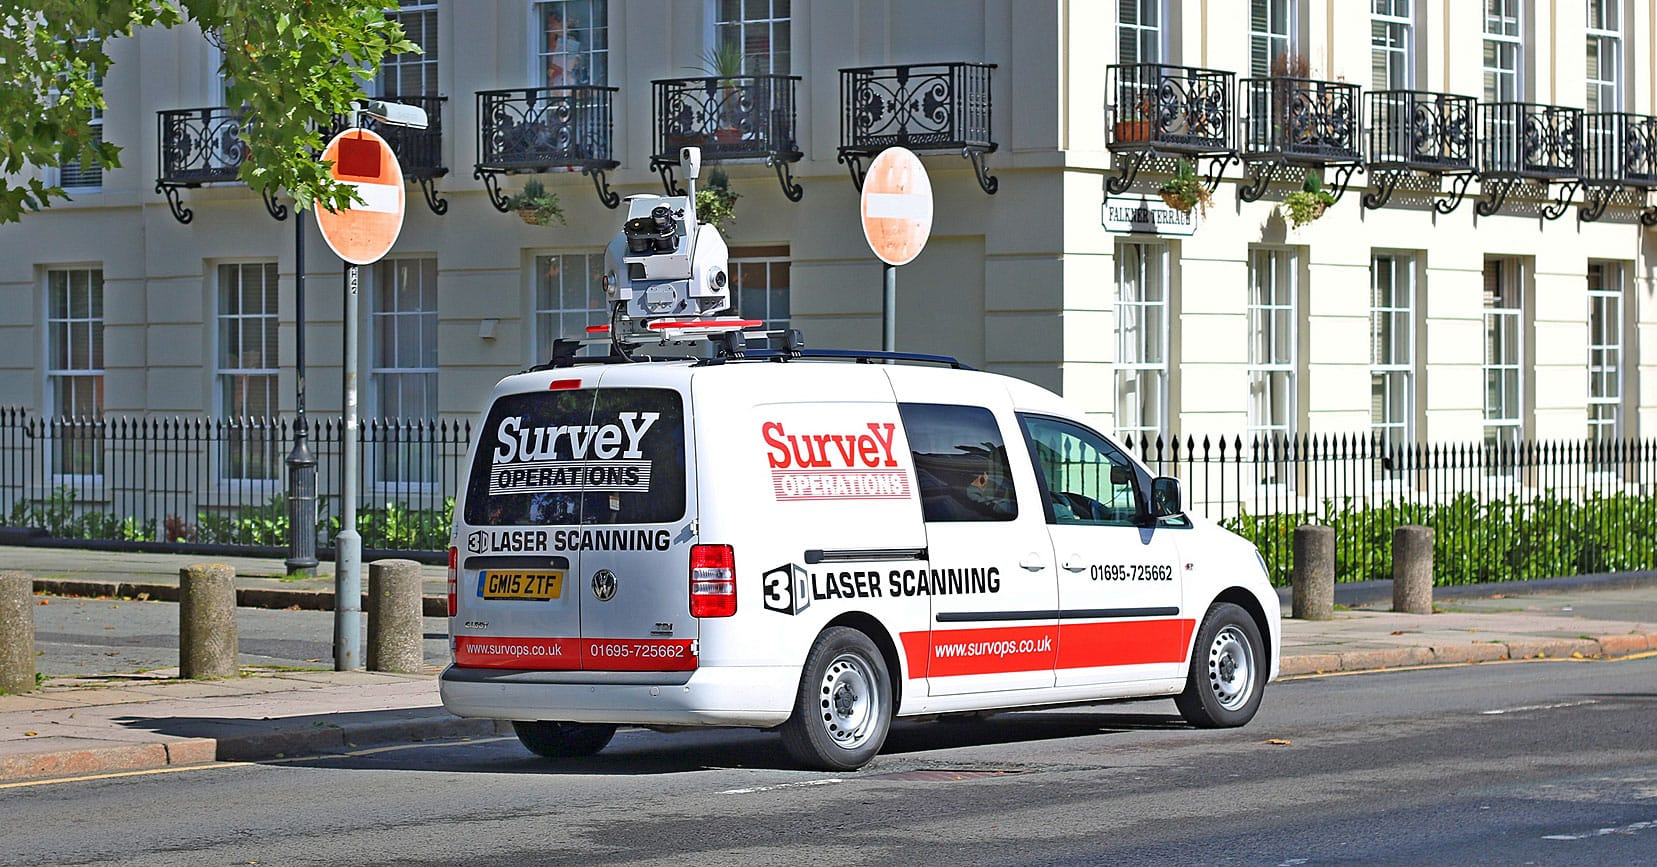 Mobile Mapping | Surveying & Inspections | Survey Operations